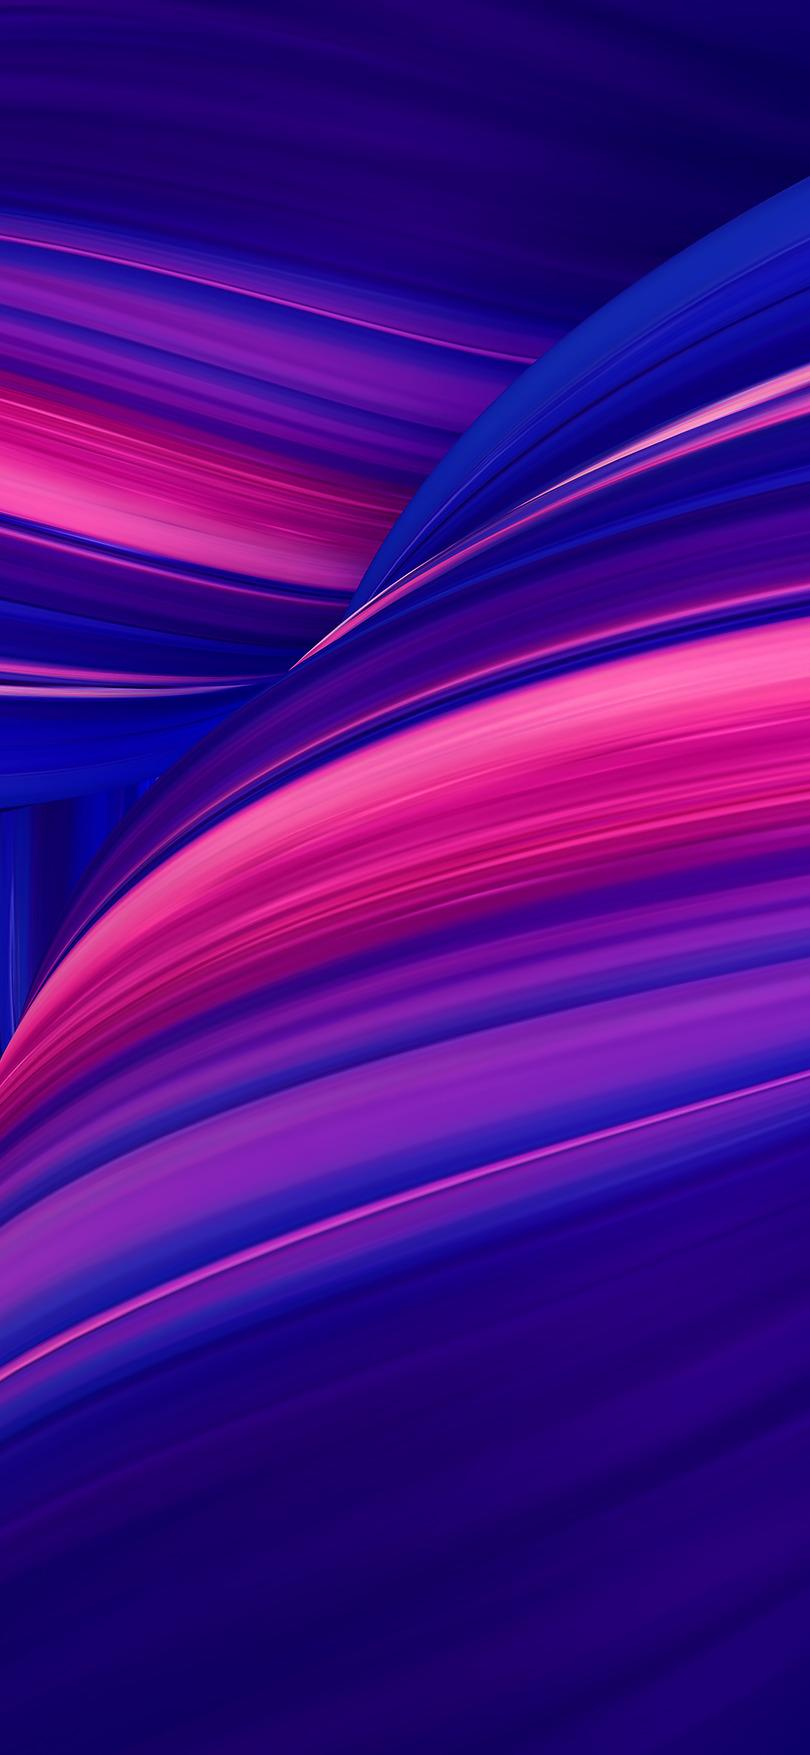 Download Oppo F9 Pro Stock Wallpapers